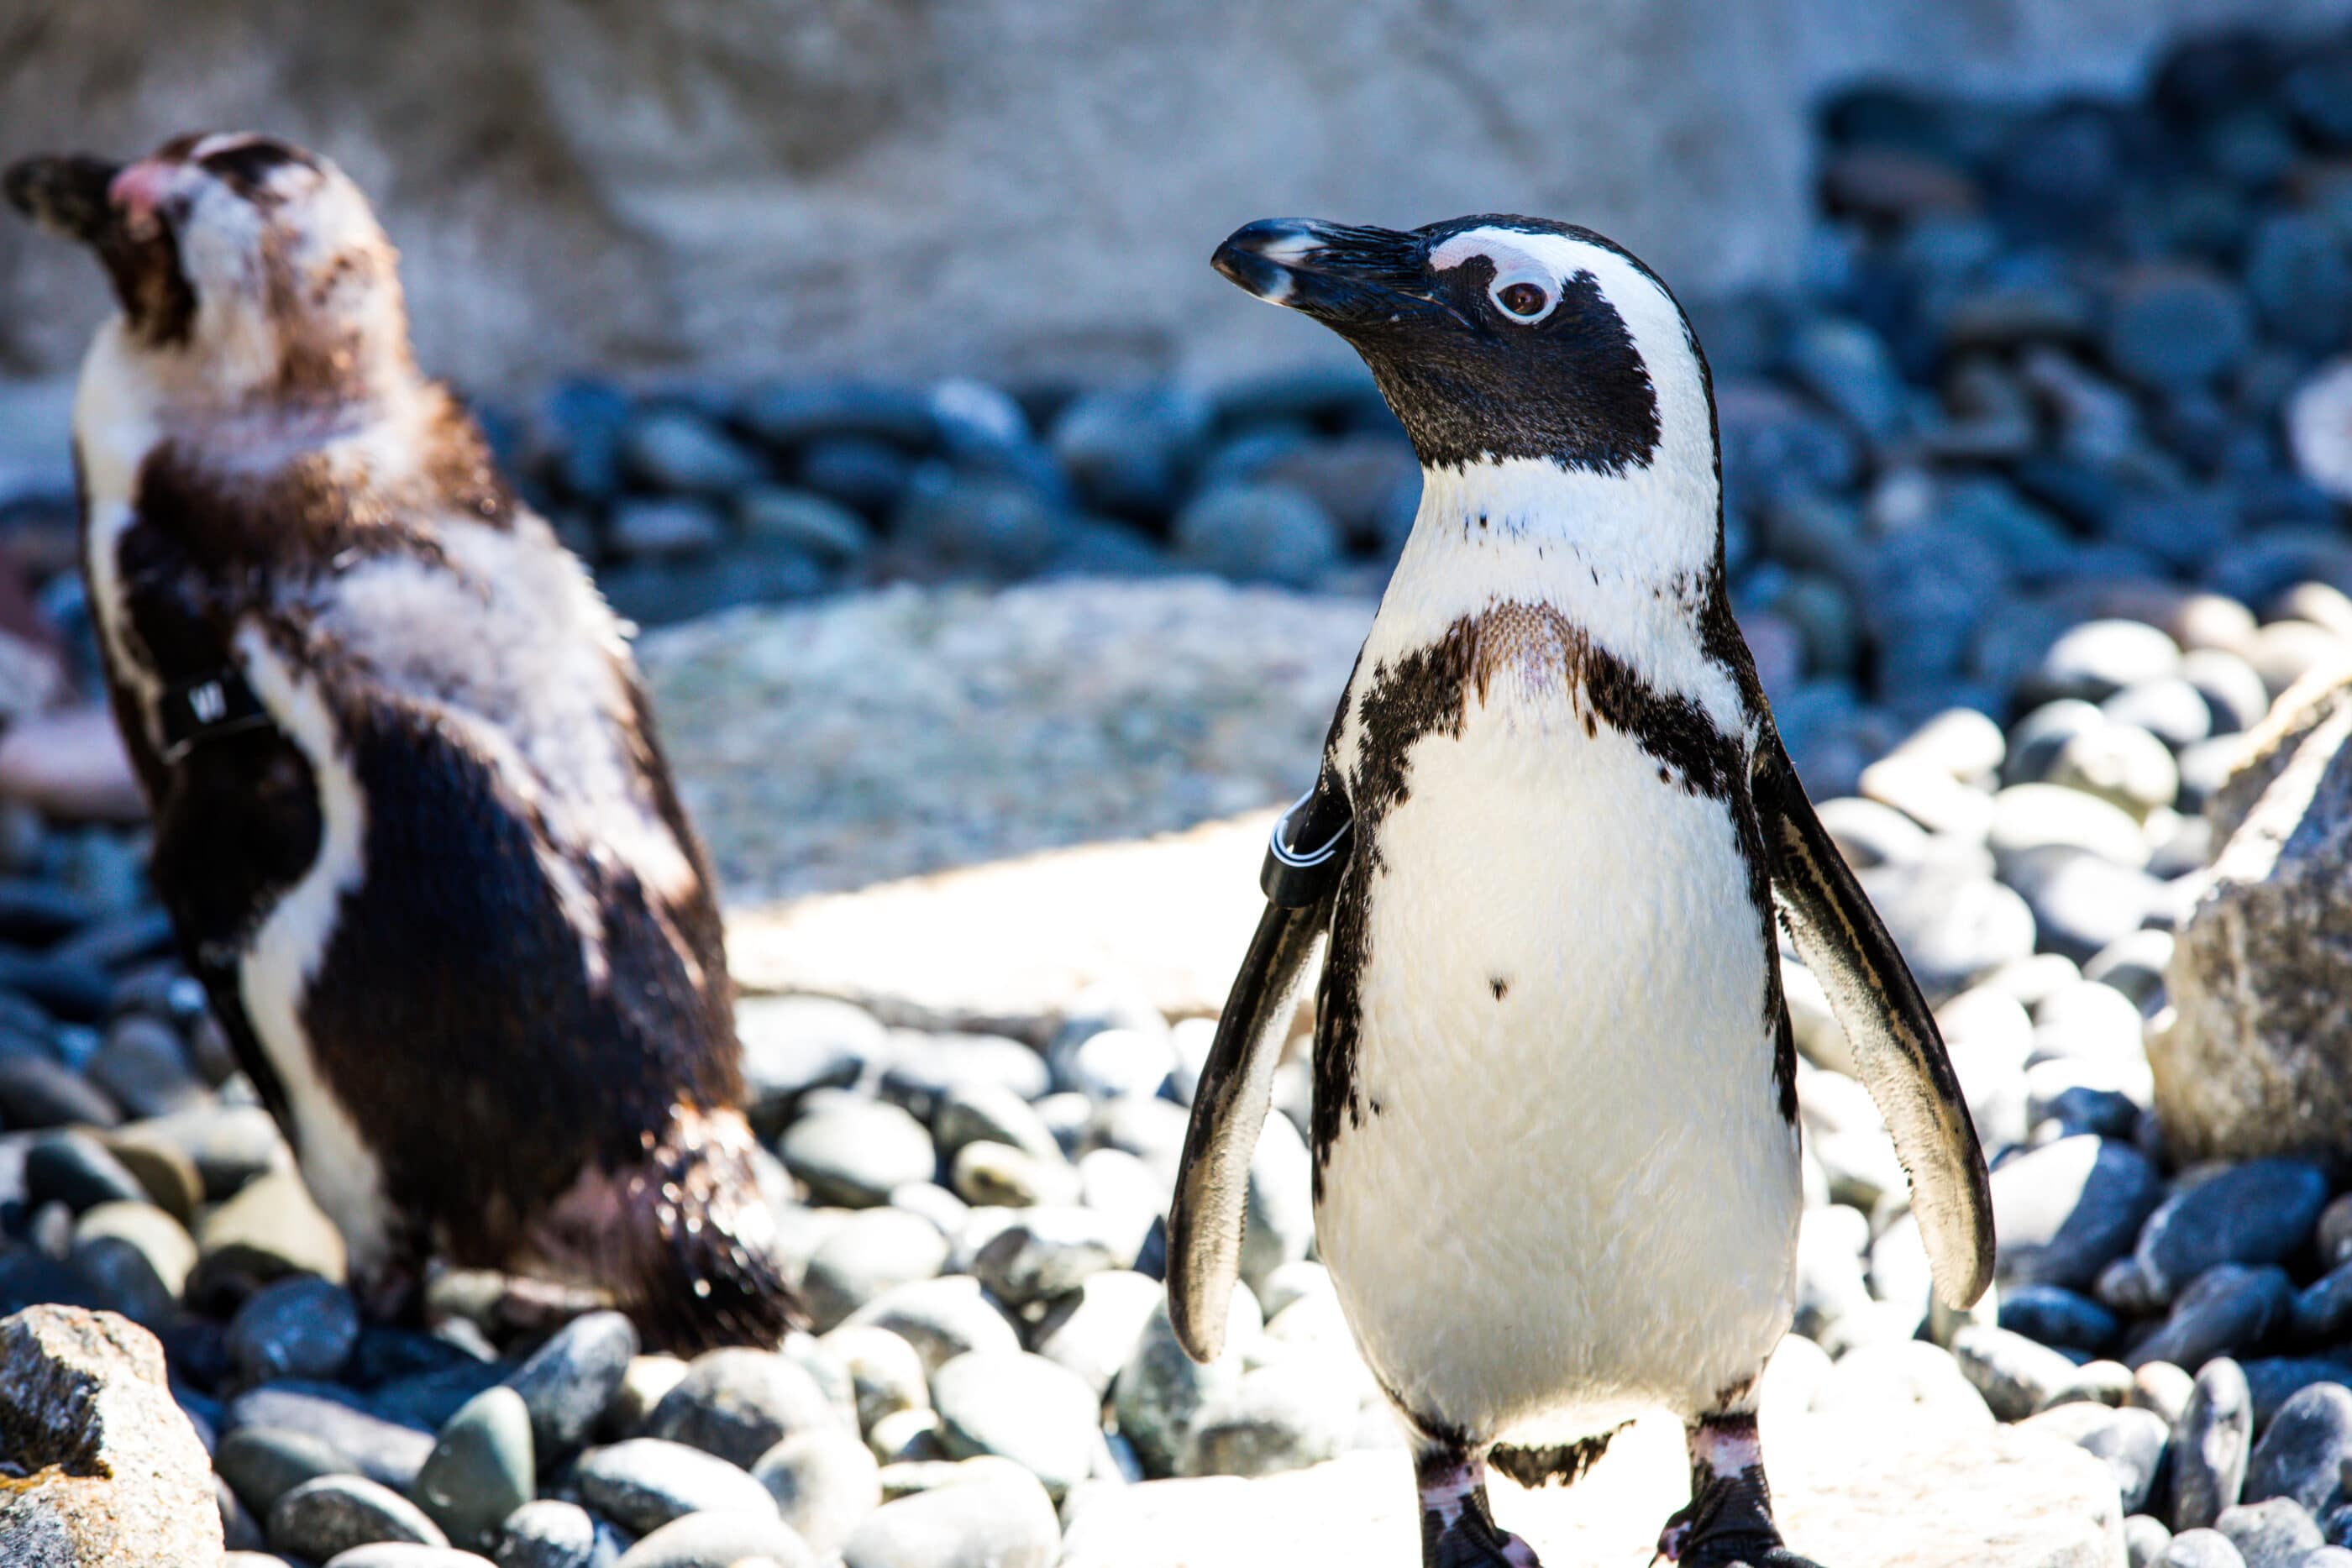 A close-up of an African penguin on its cobblestone beach.